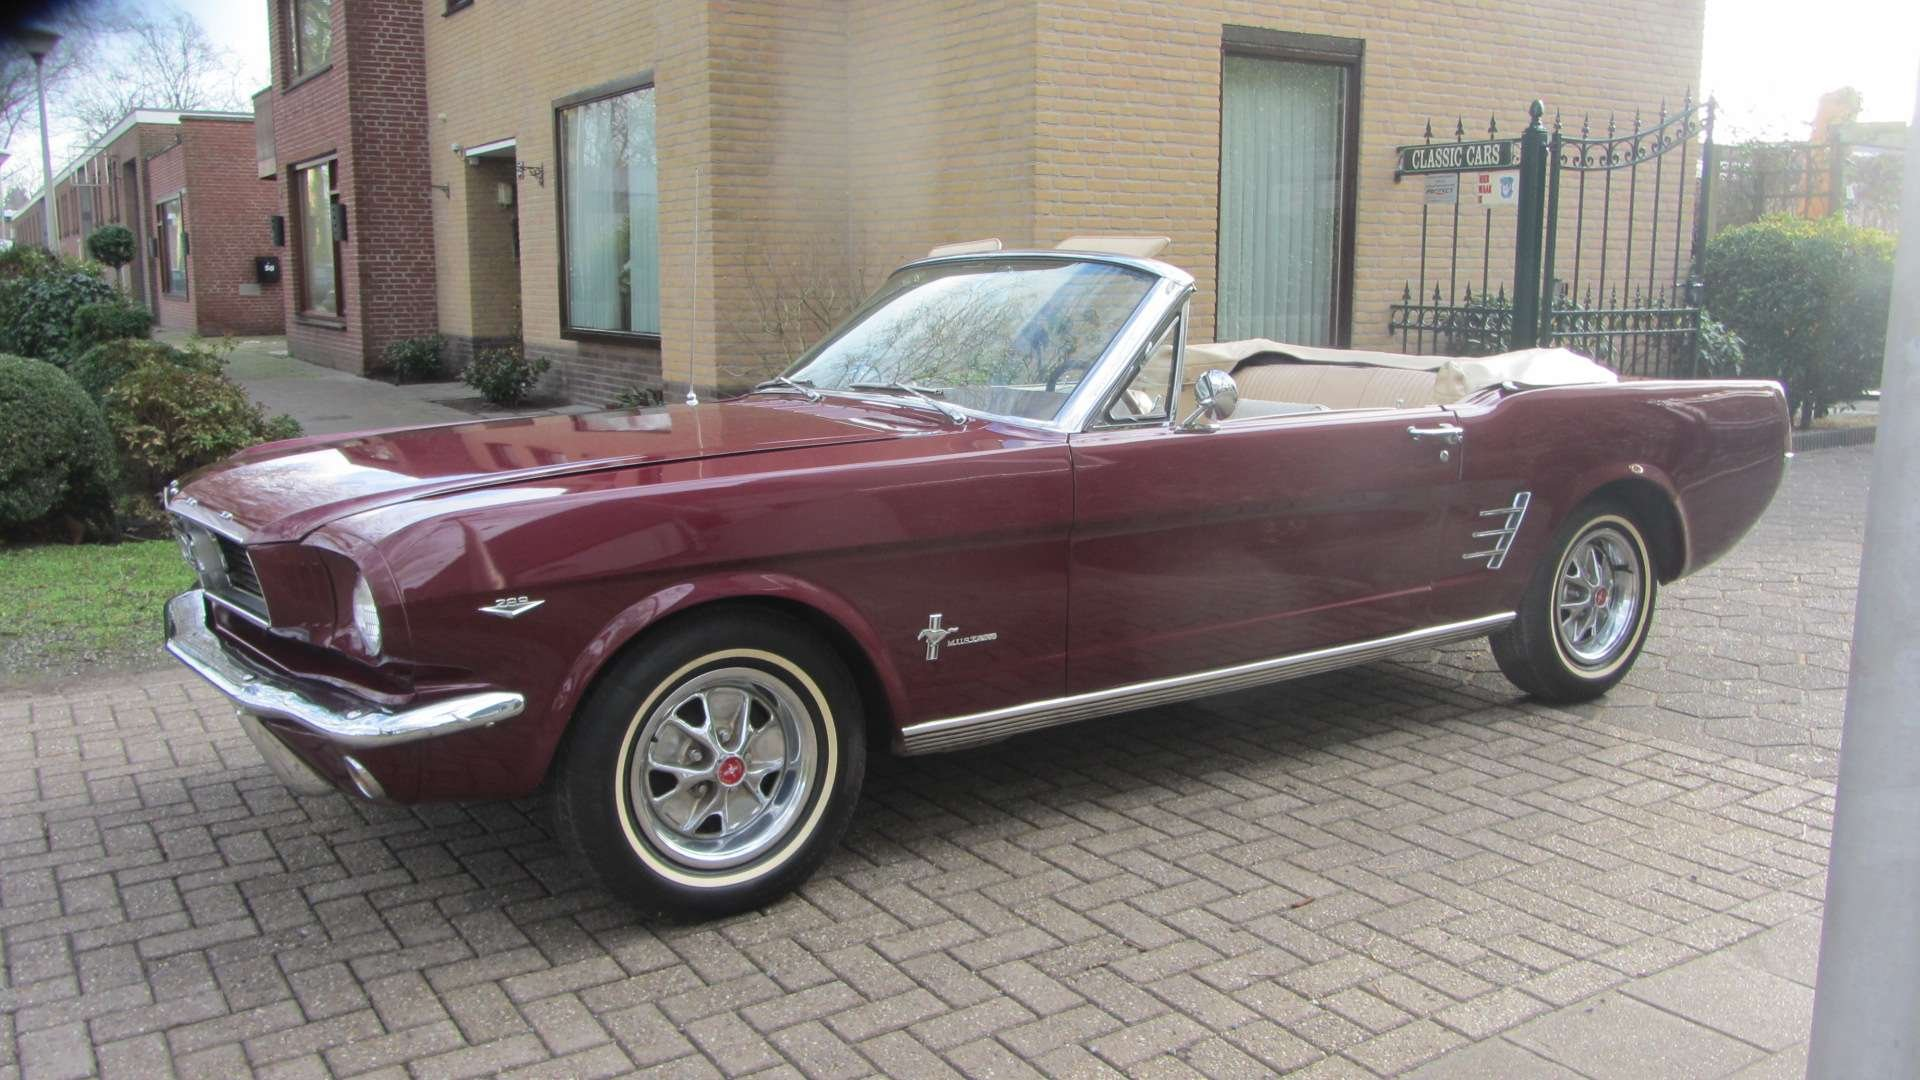 Ford Mustang V 8 Pony Intr 1966  & 50 USA Classics For Sale (picture 4 of 6)